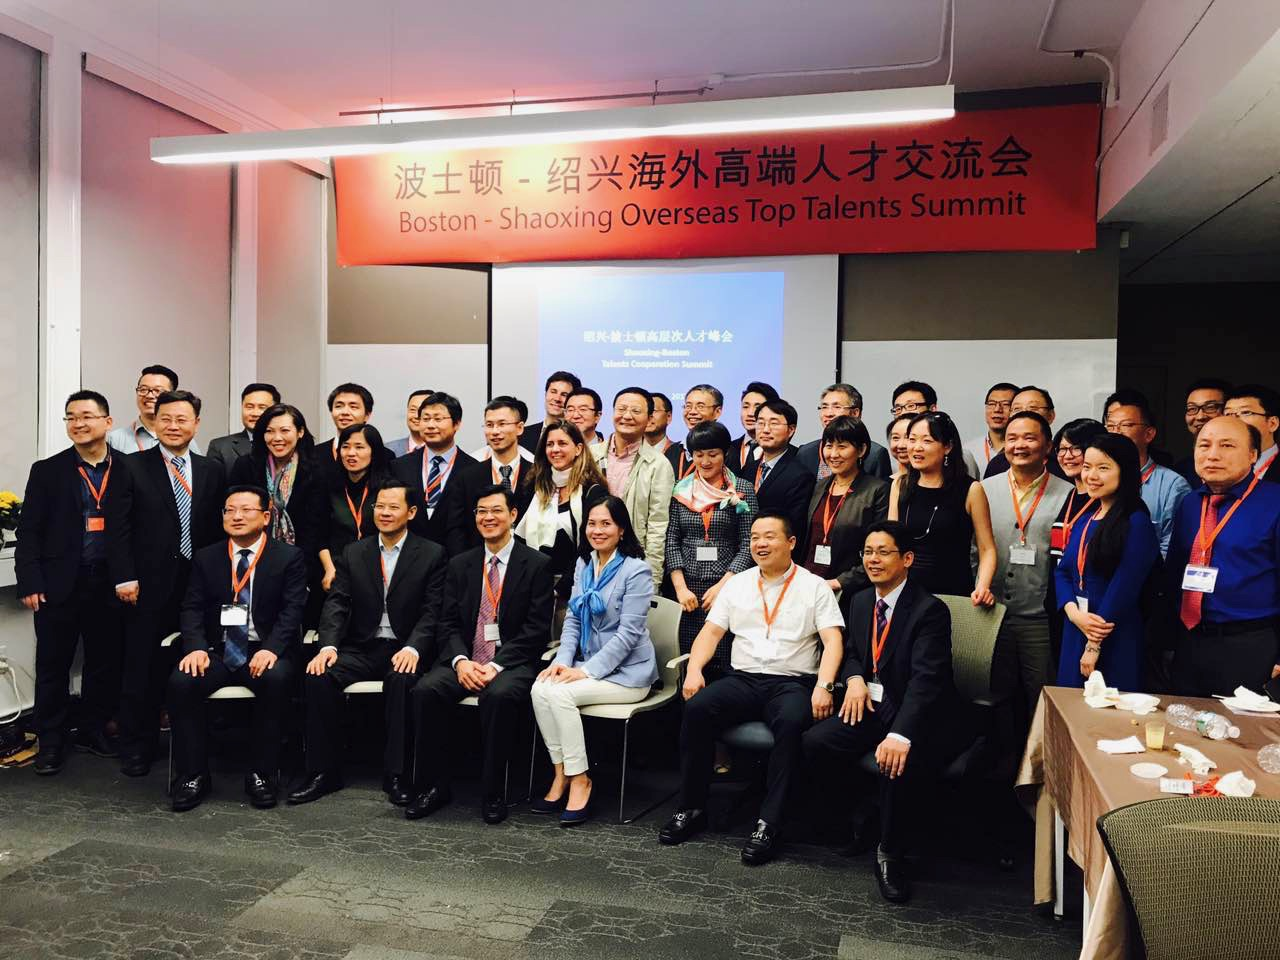 Boston - Shaoxing Top Talent Summit